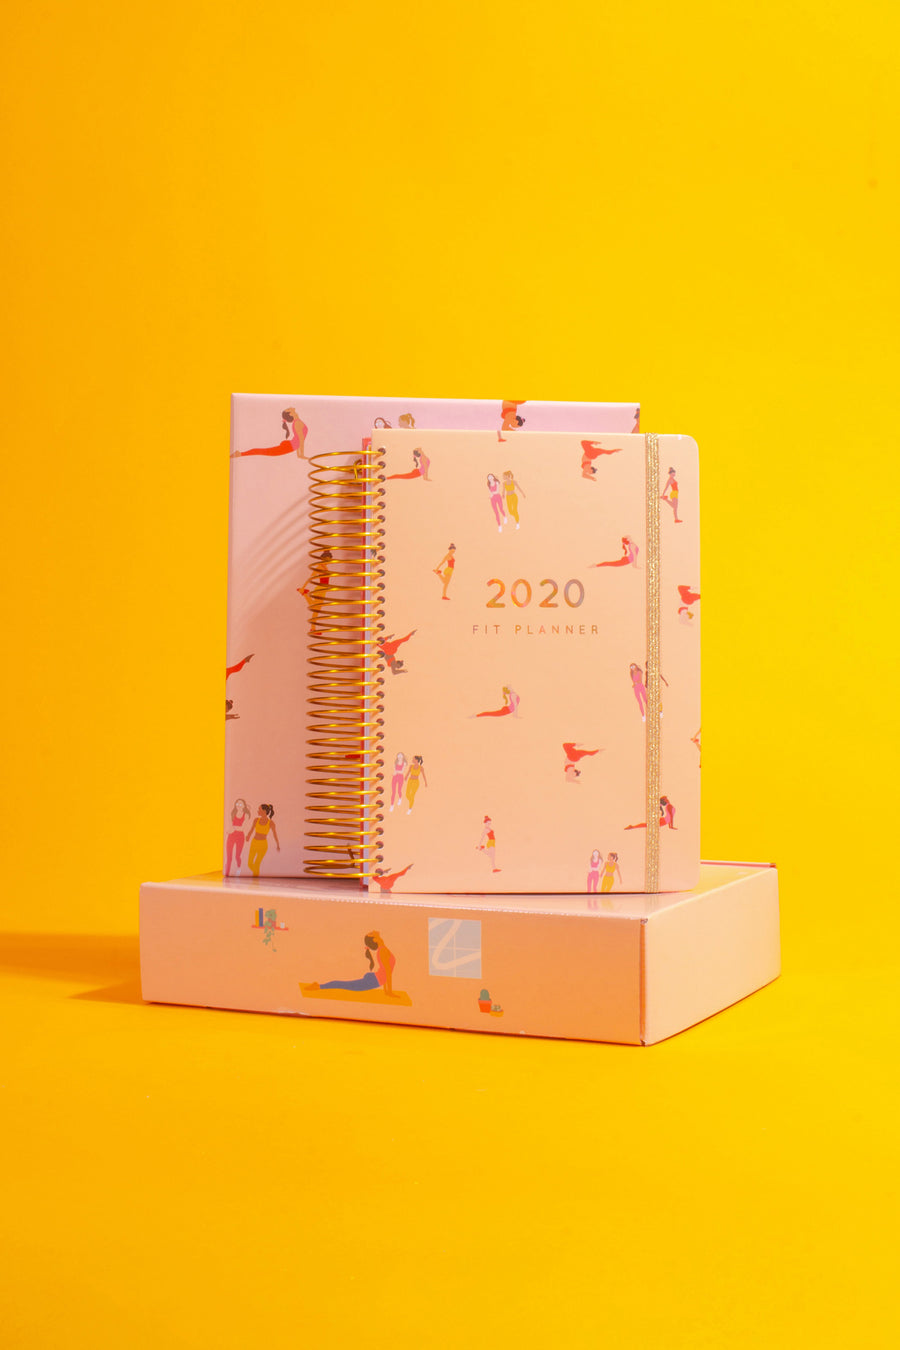 2020 Fit Planner + Sticker Bundle